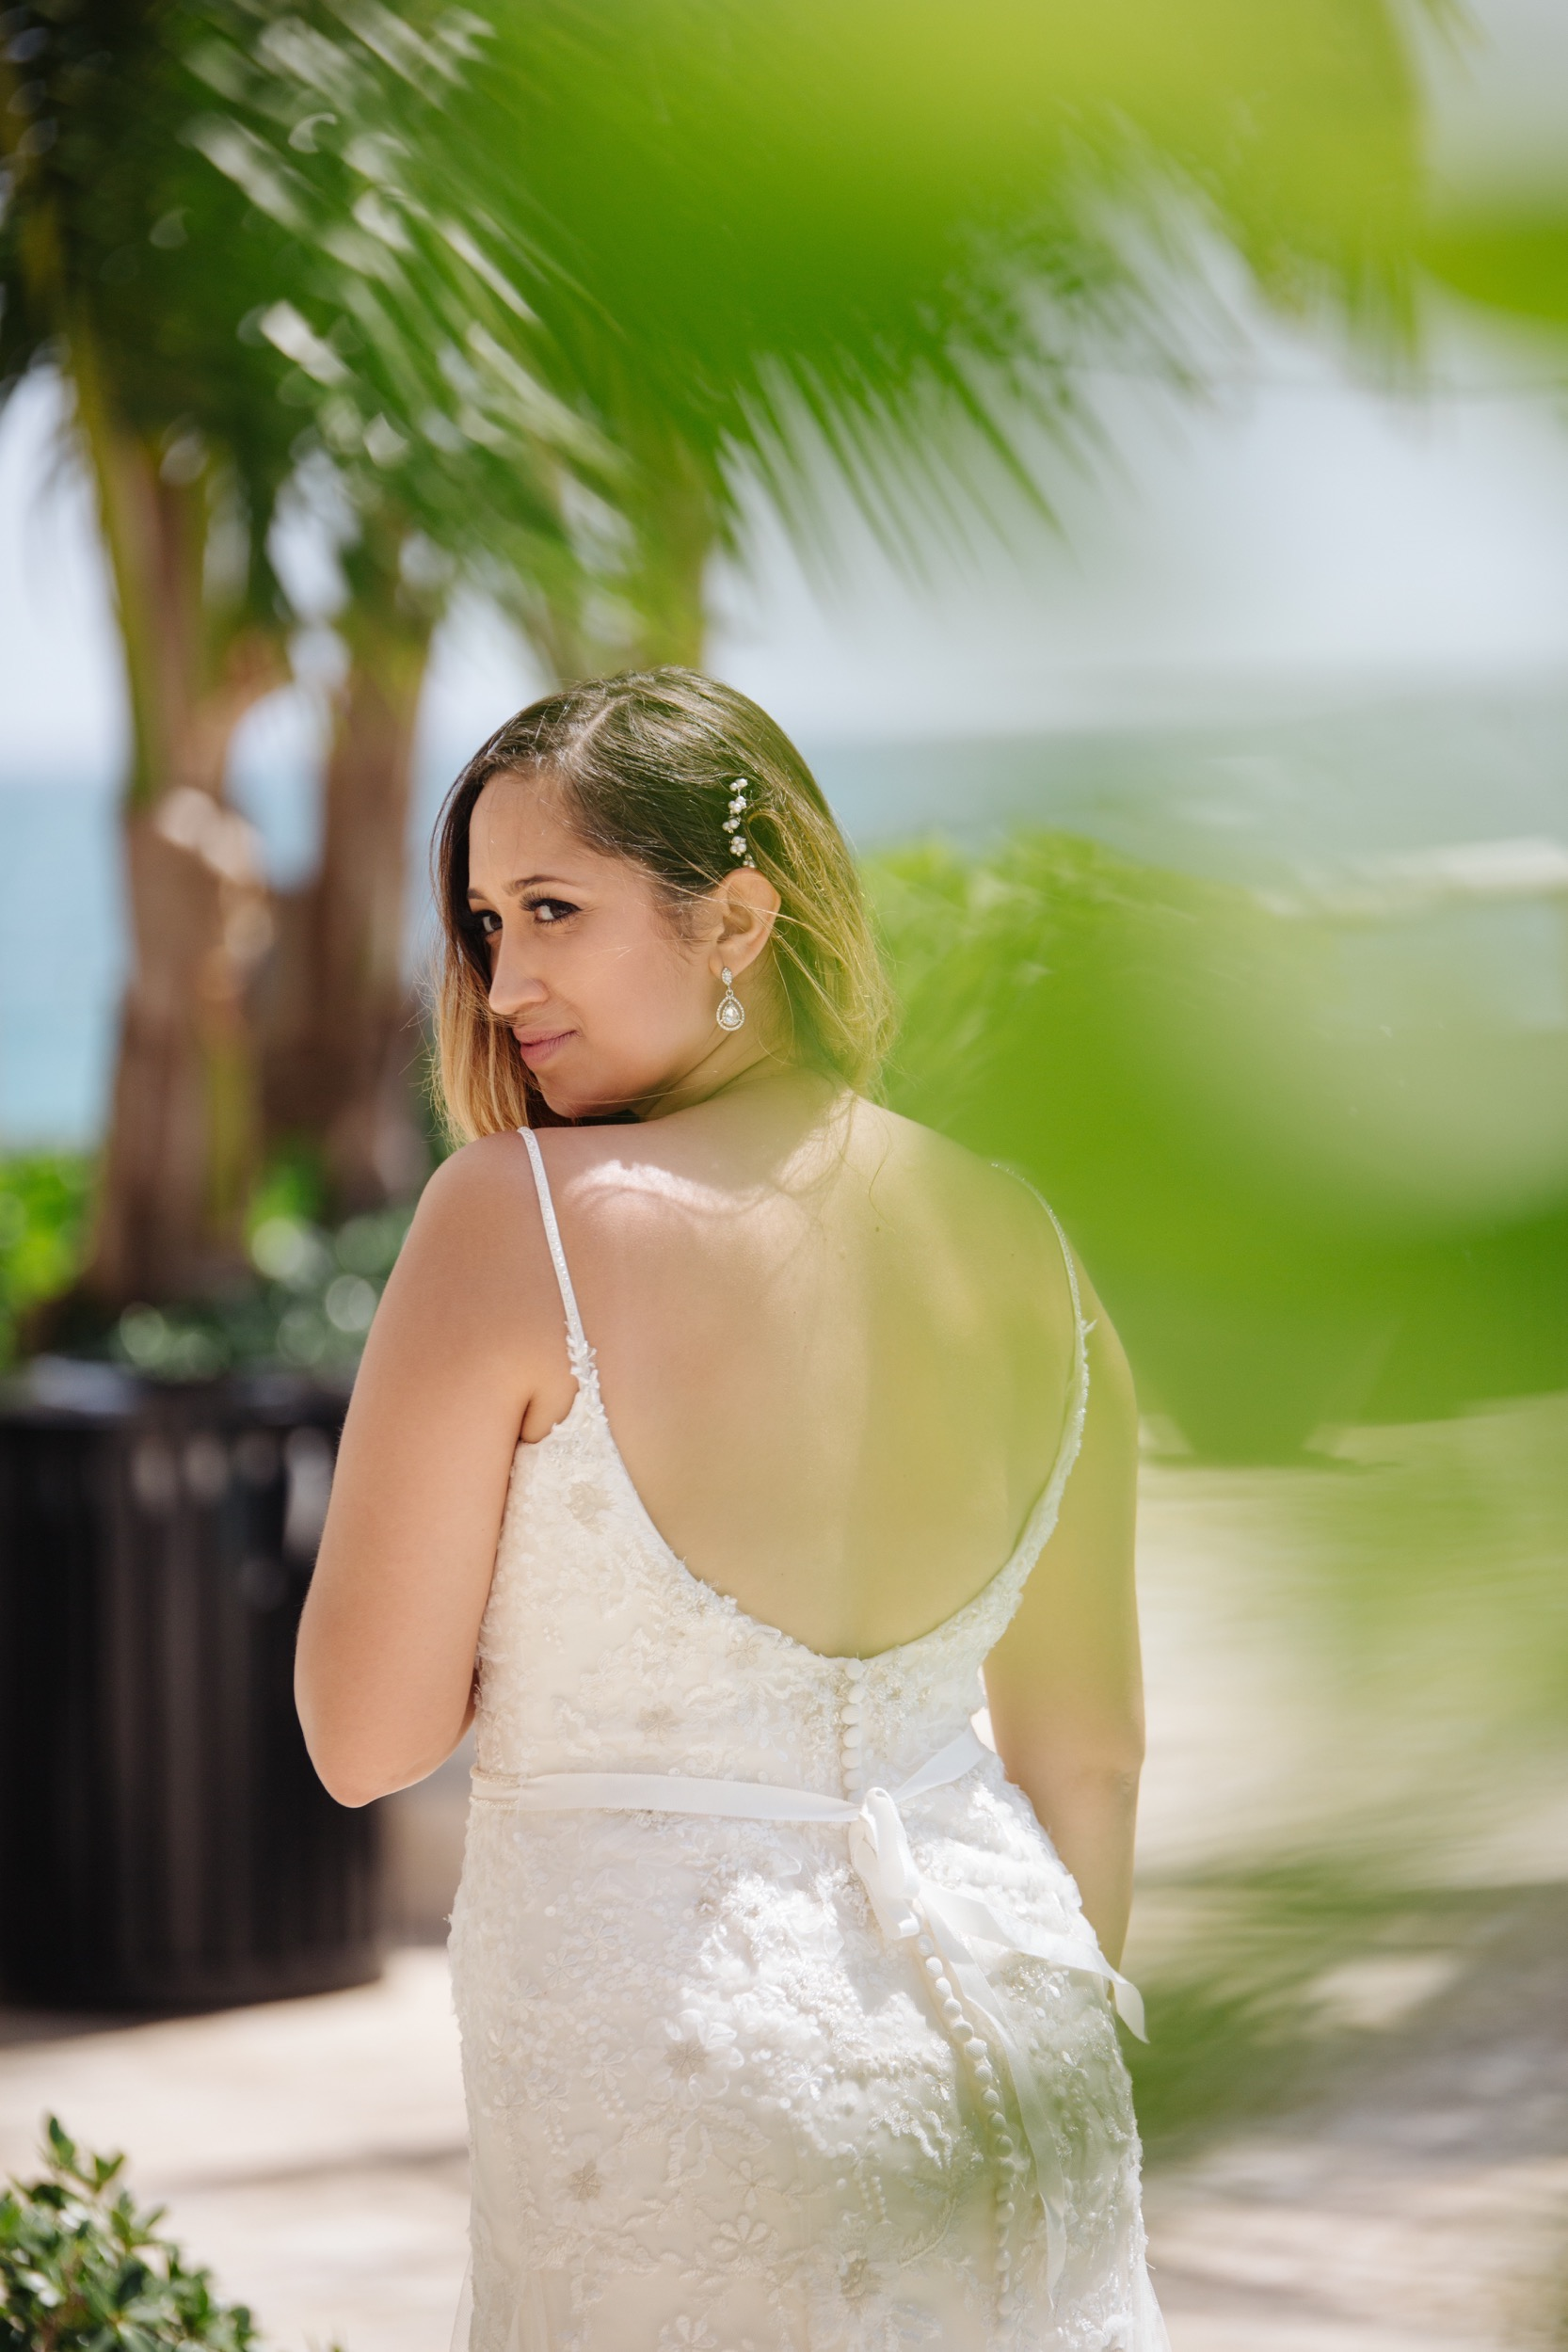 Le Cape Weddings - Destination Wedding in Puerto Rico - Condado Vanderbuilt Wedding -7360.jpg